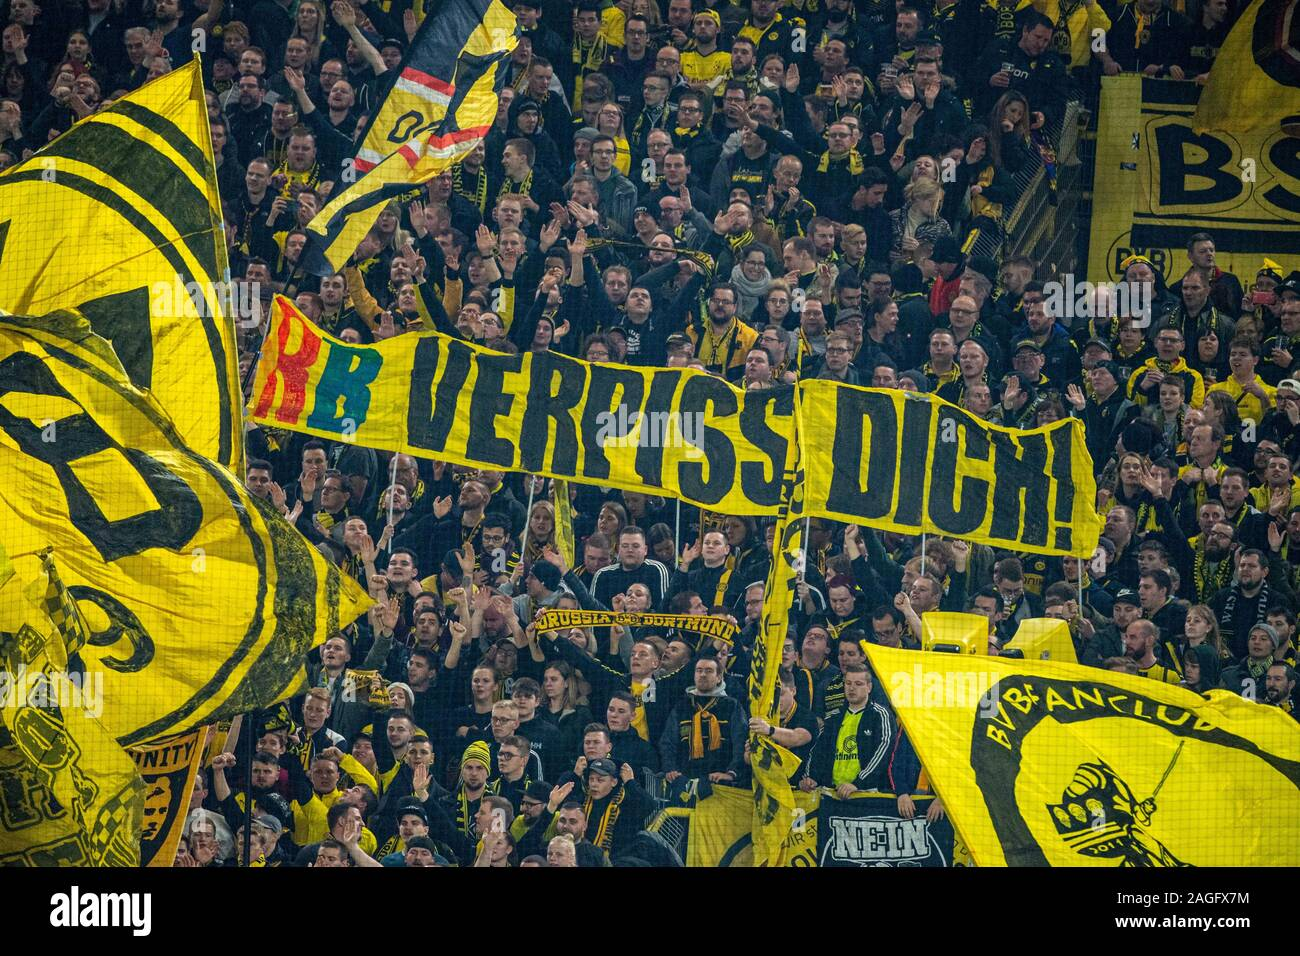 On The South Stand Fans Hold Up A Banner That Reads Rb Verpiss Dich Fan Fans